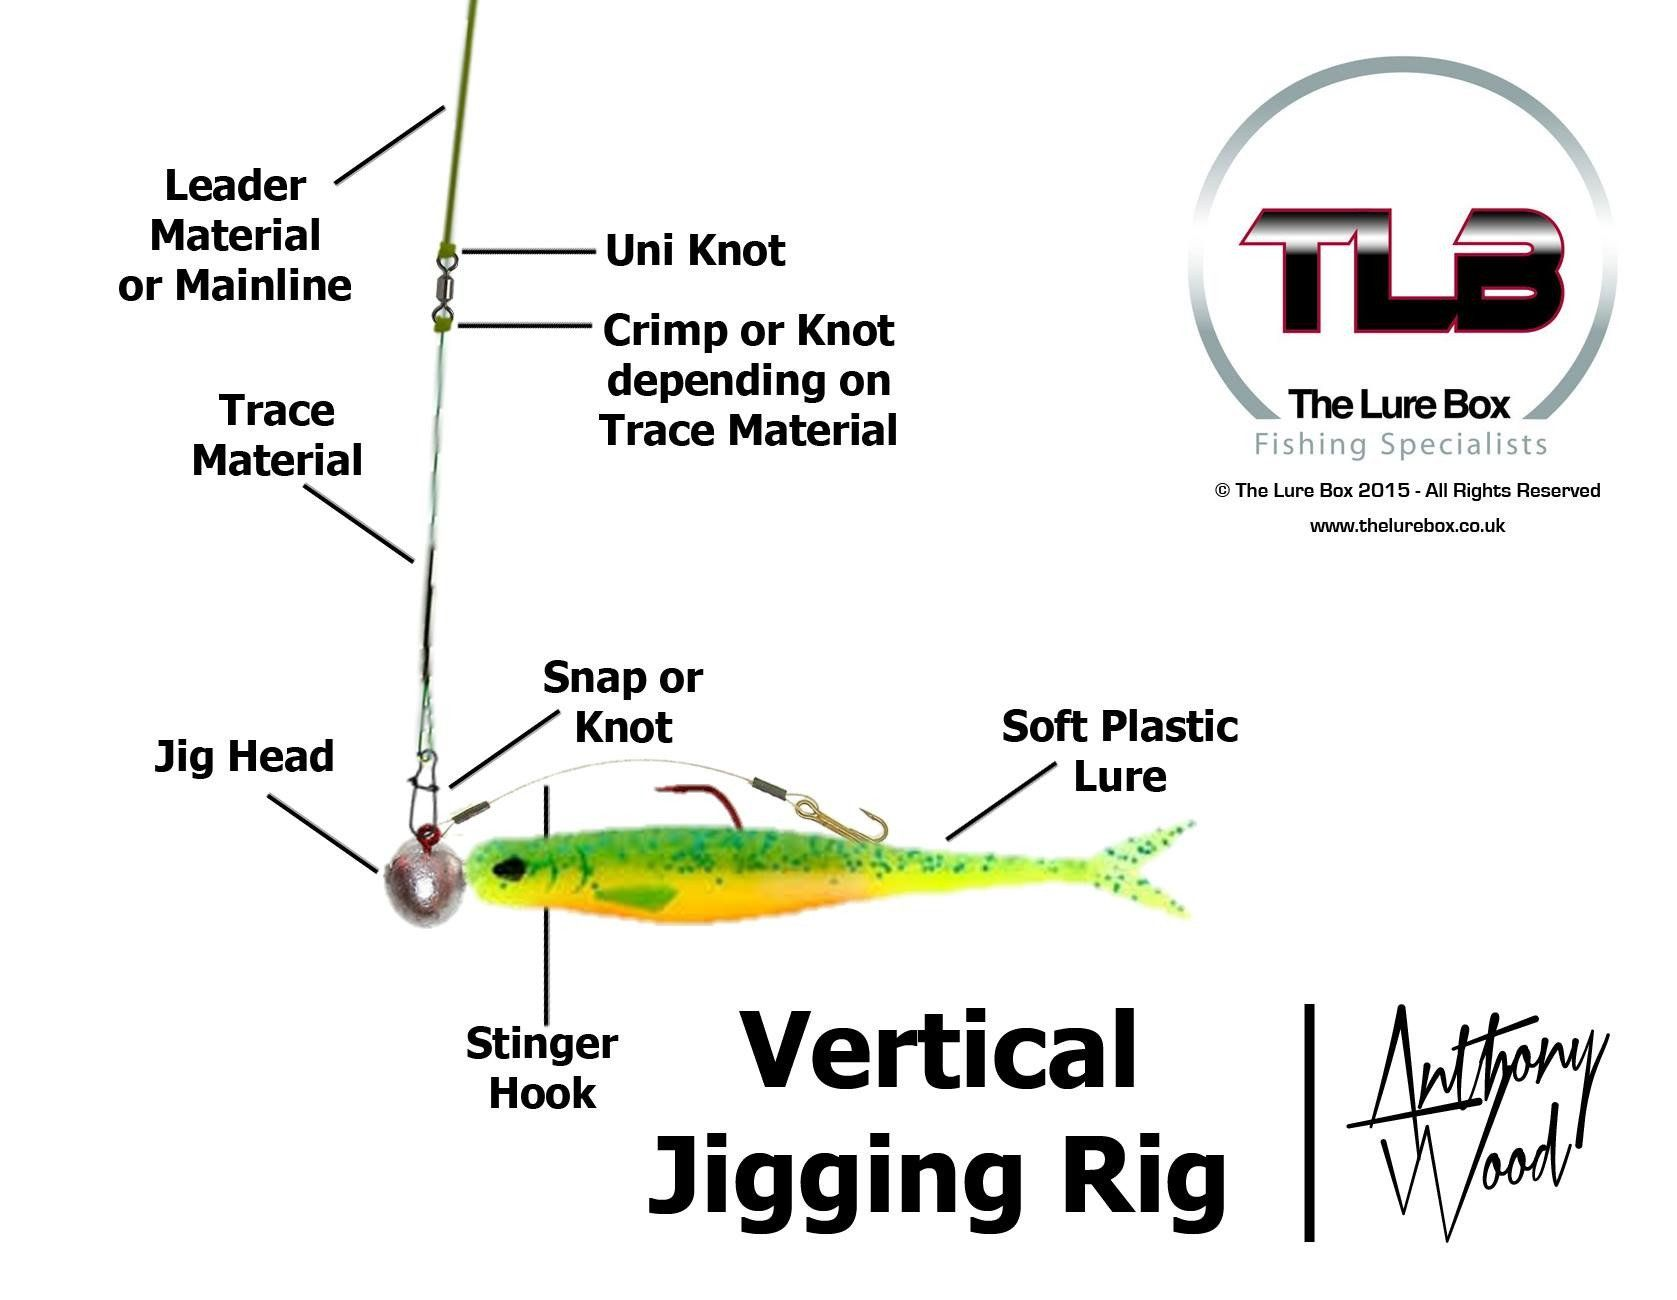 hight resolution of vertical jigging rig diagram lure fishing technique the lure box the lure box